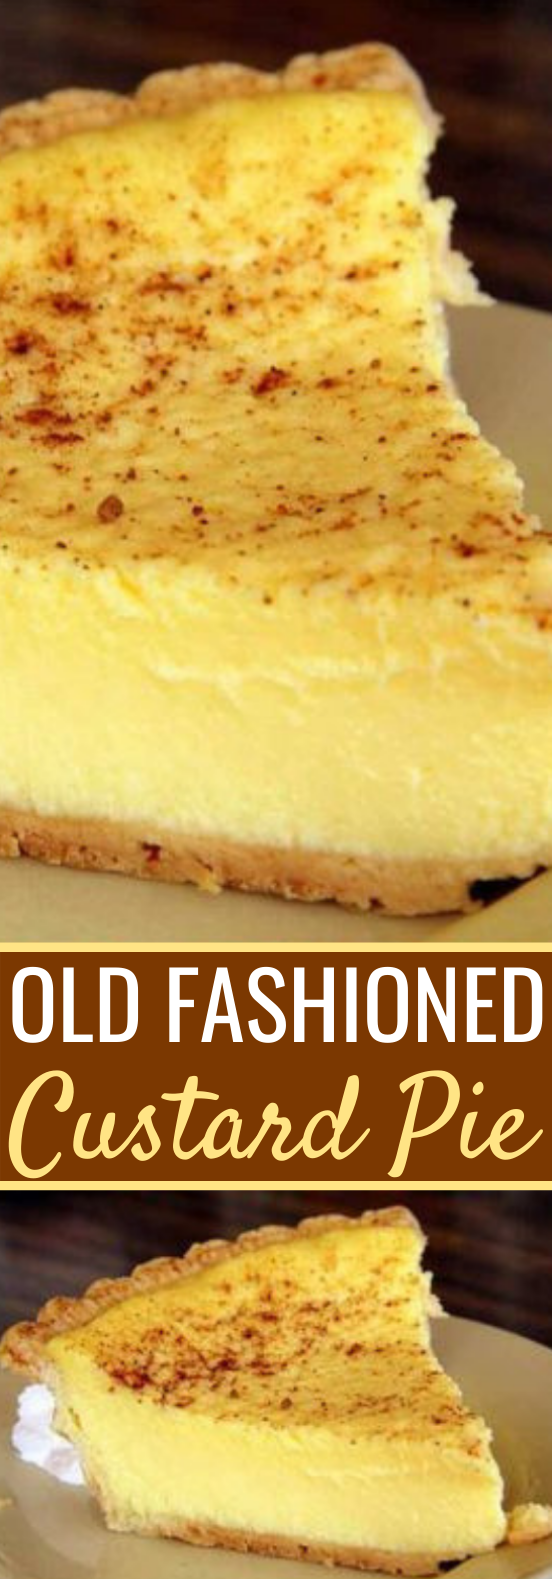 Old Fashioned Custard Pie #desserts #recipes #custard #pie #baking